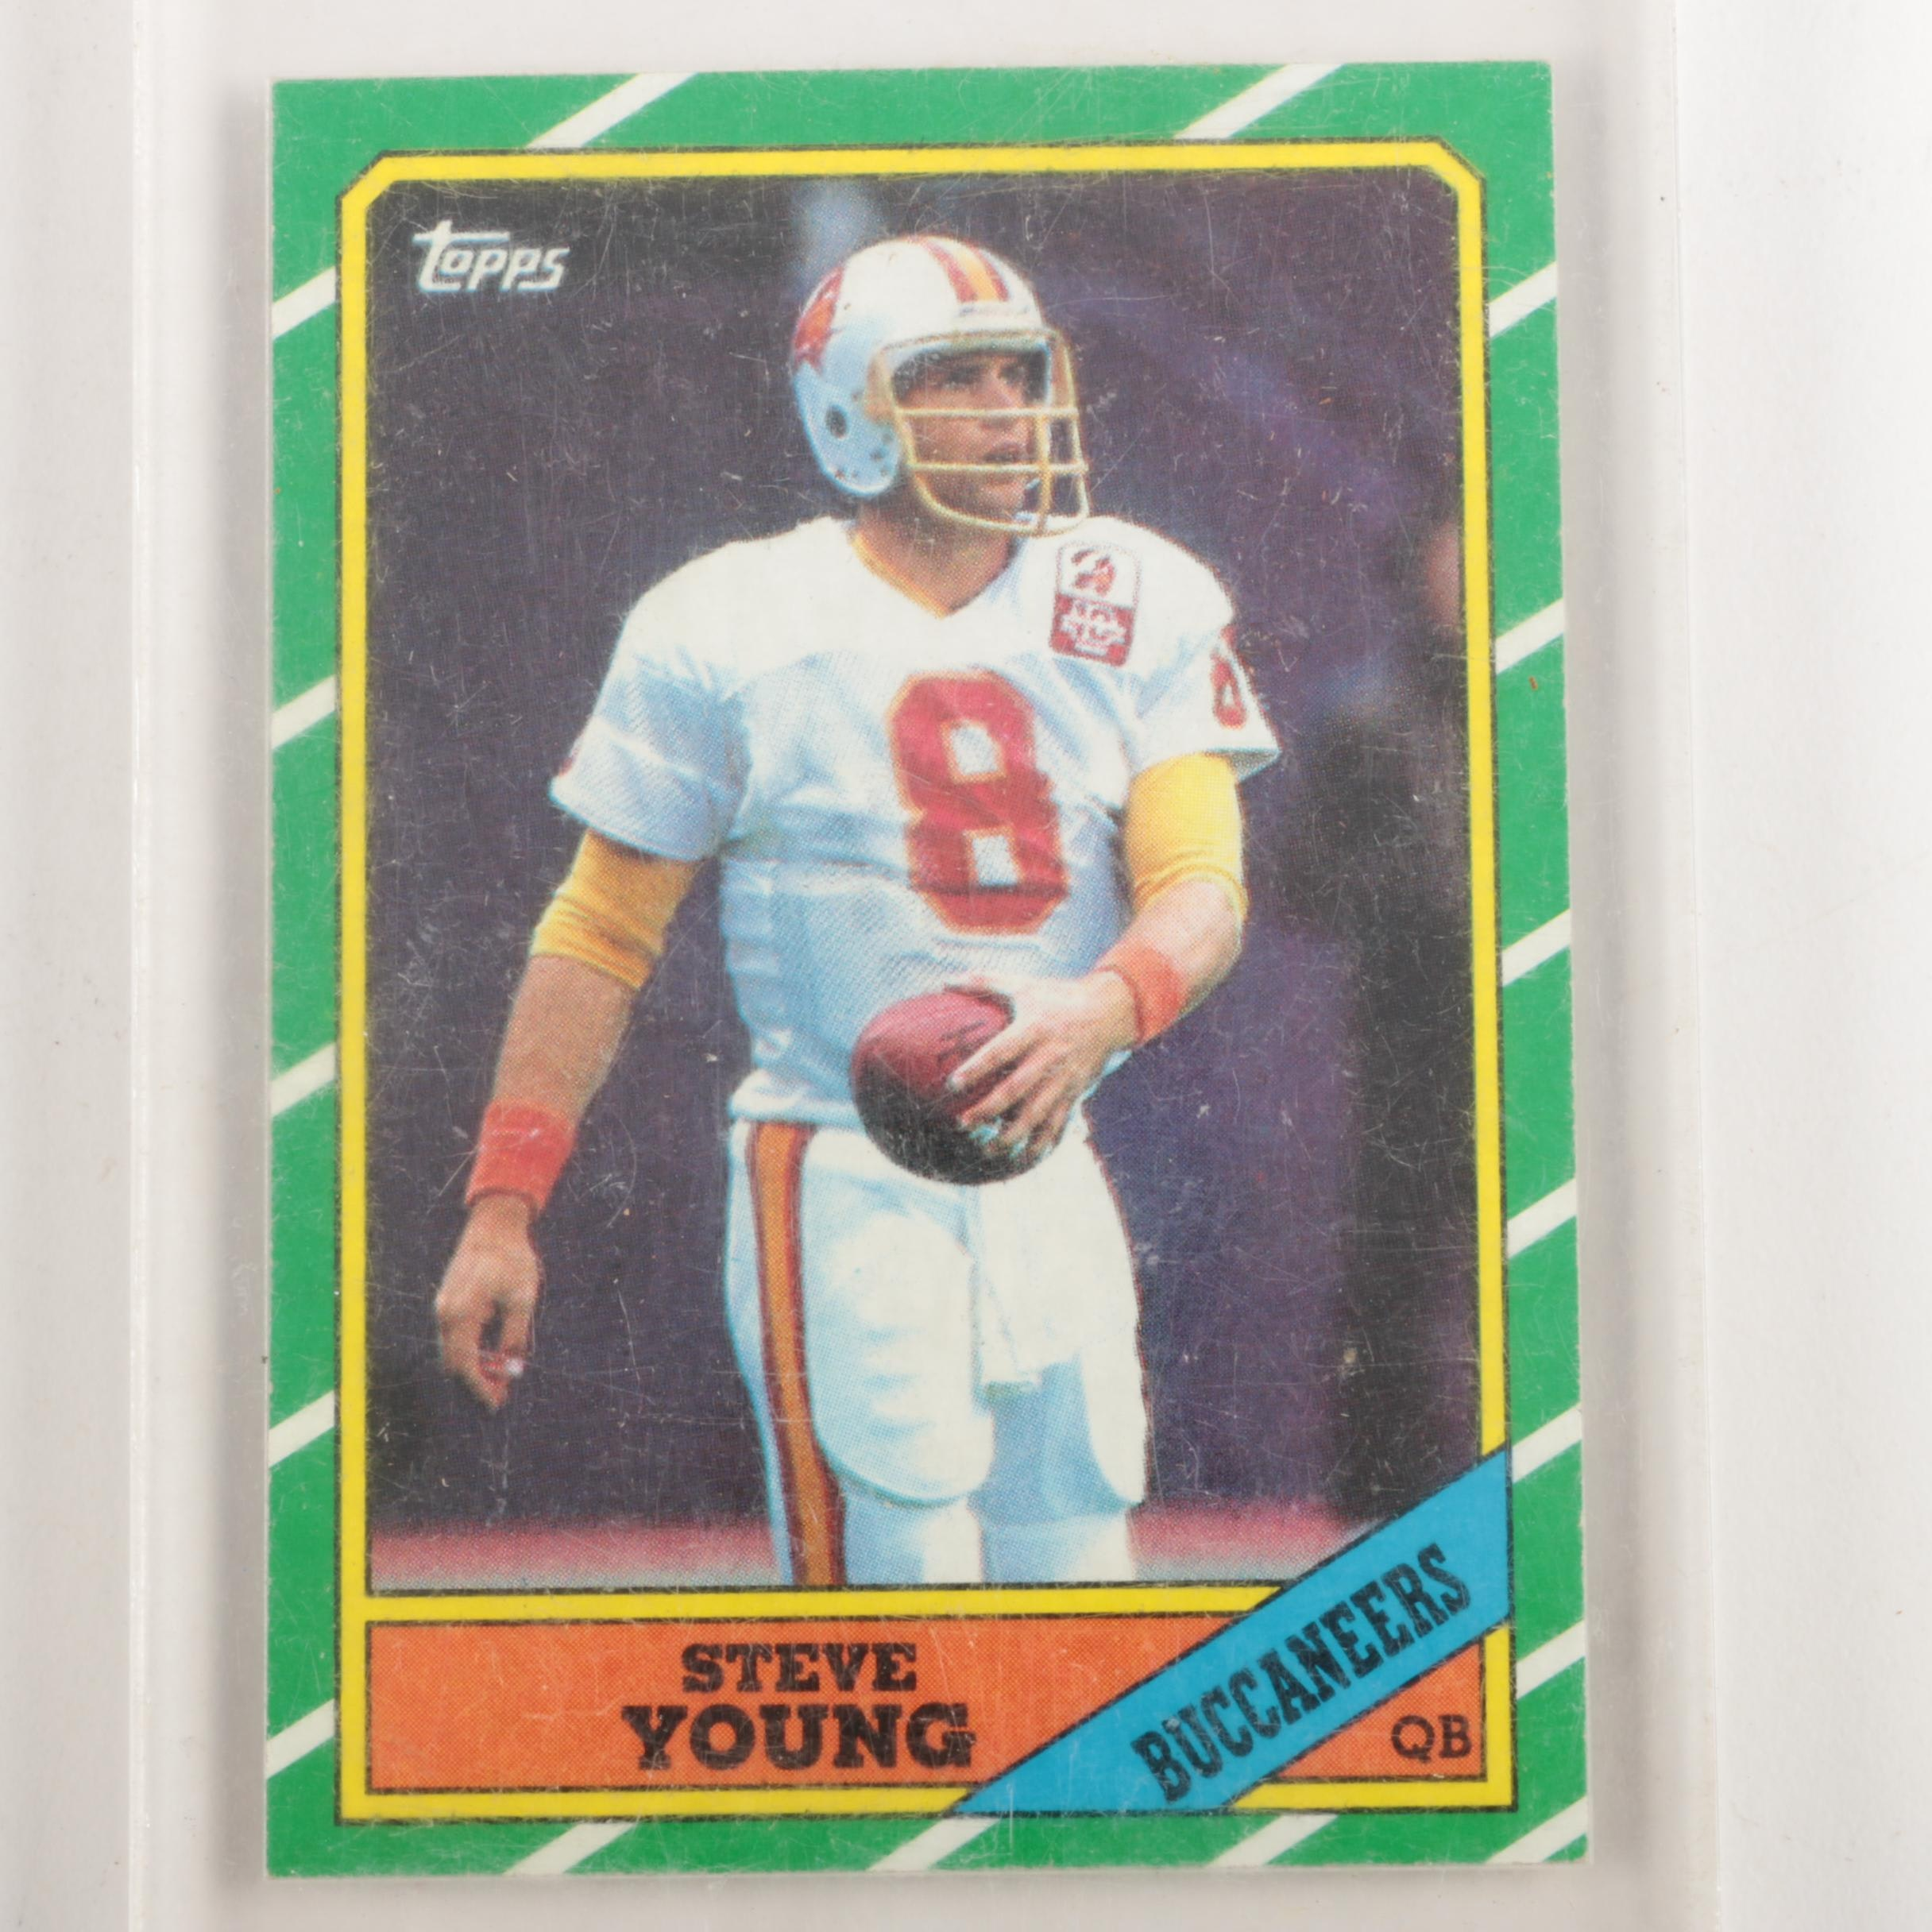 1986 Topps 374 Steve Young Football Card